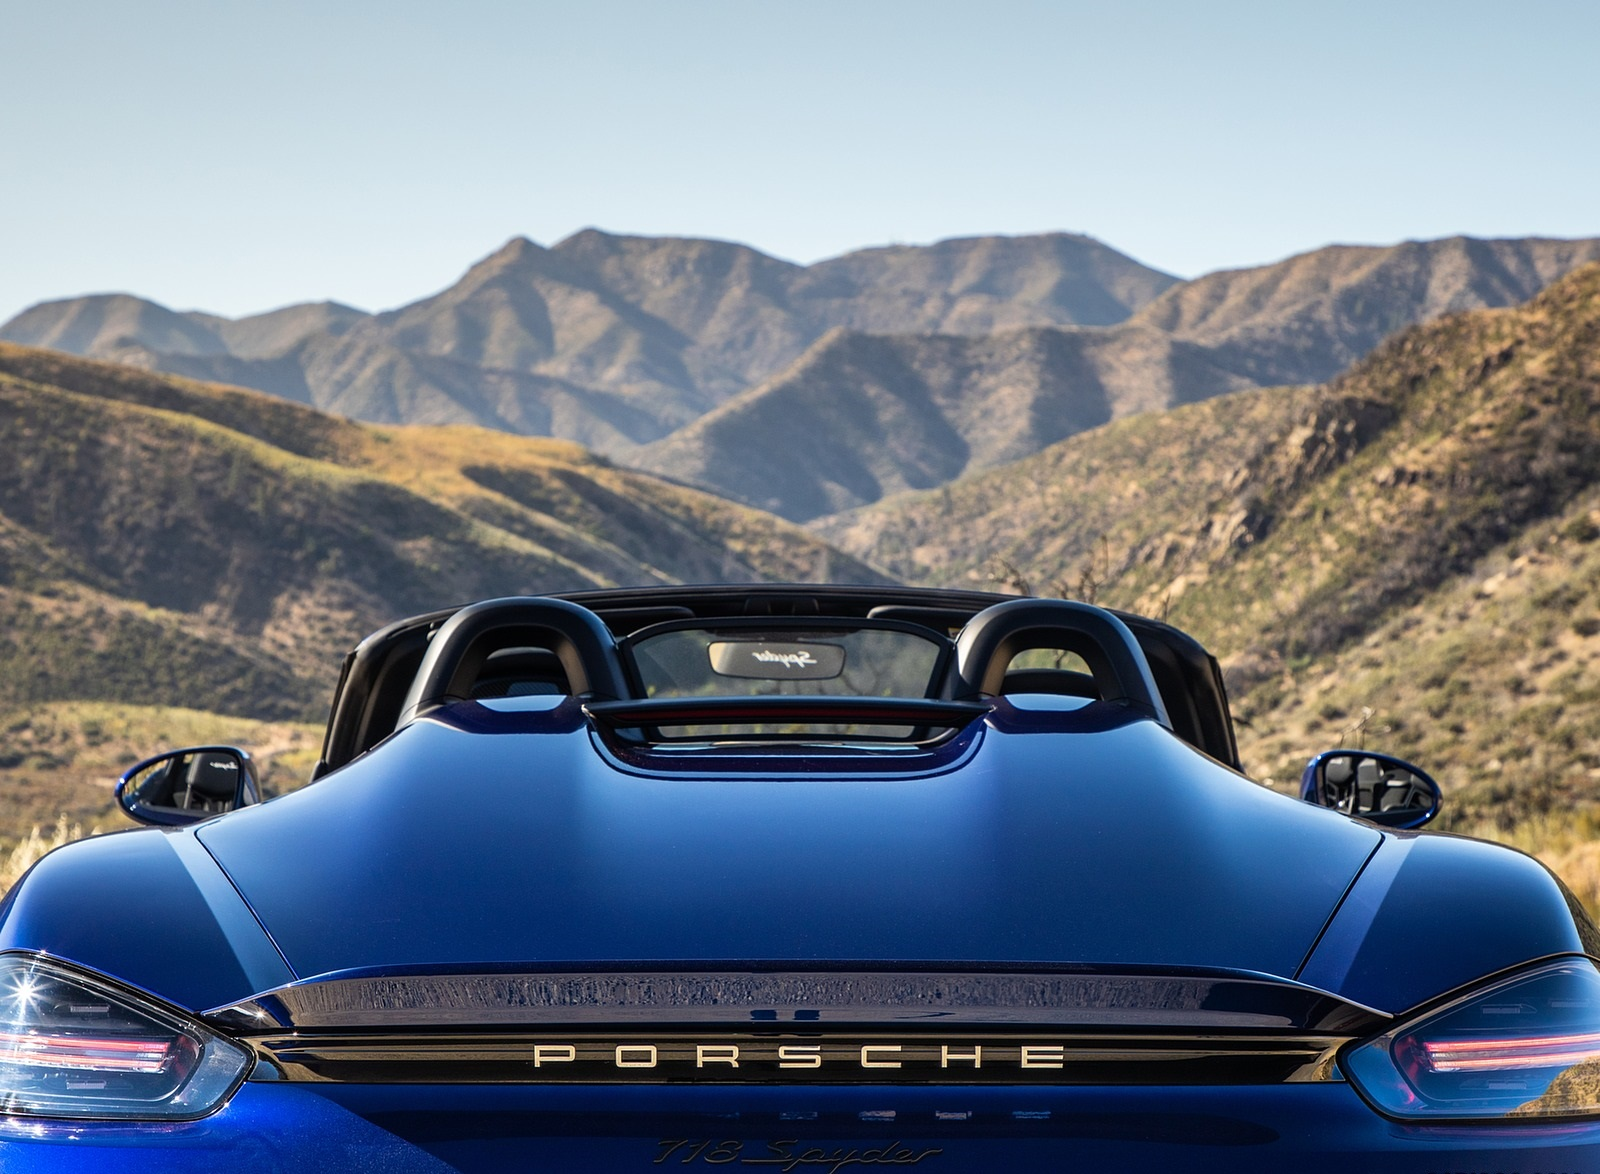 2020 Porsche 718 Spyder Detail Wallpapers (9)